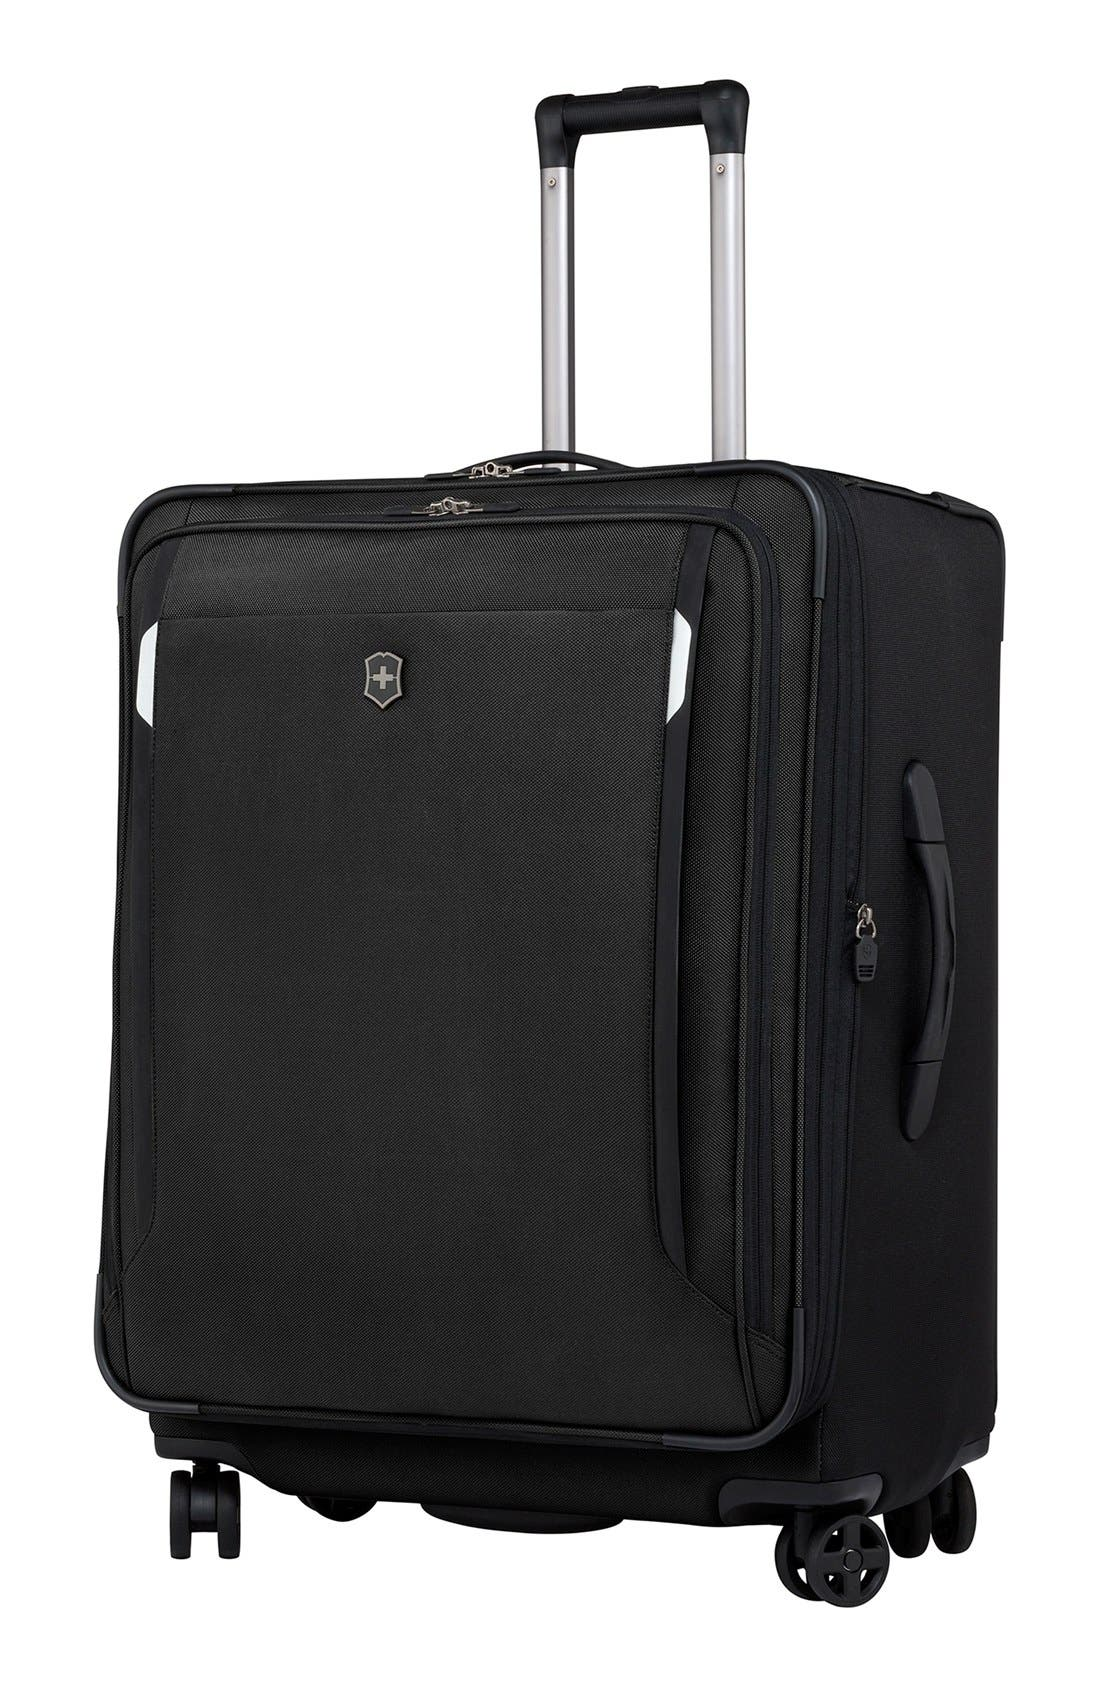 WT 5.0 Dual Caster Wheeled 27-Inch Packing Case,                         Main,                         color, Black